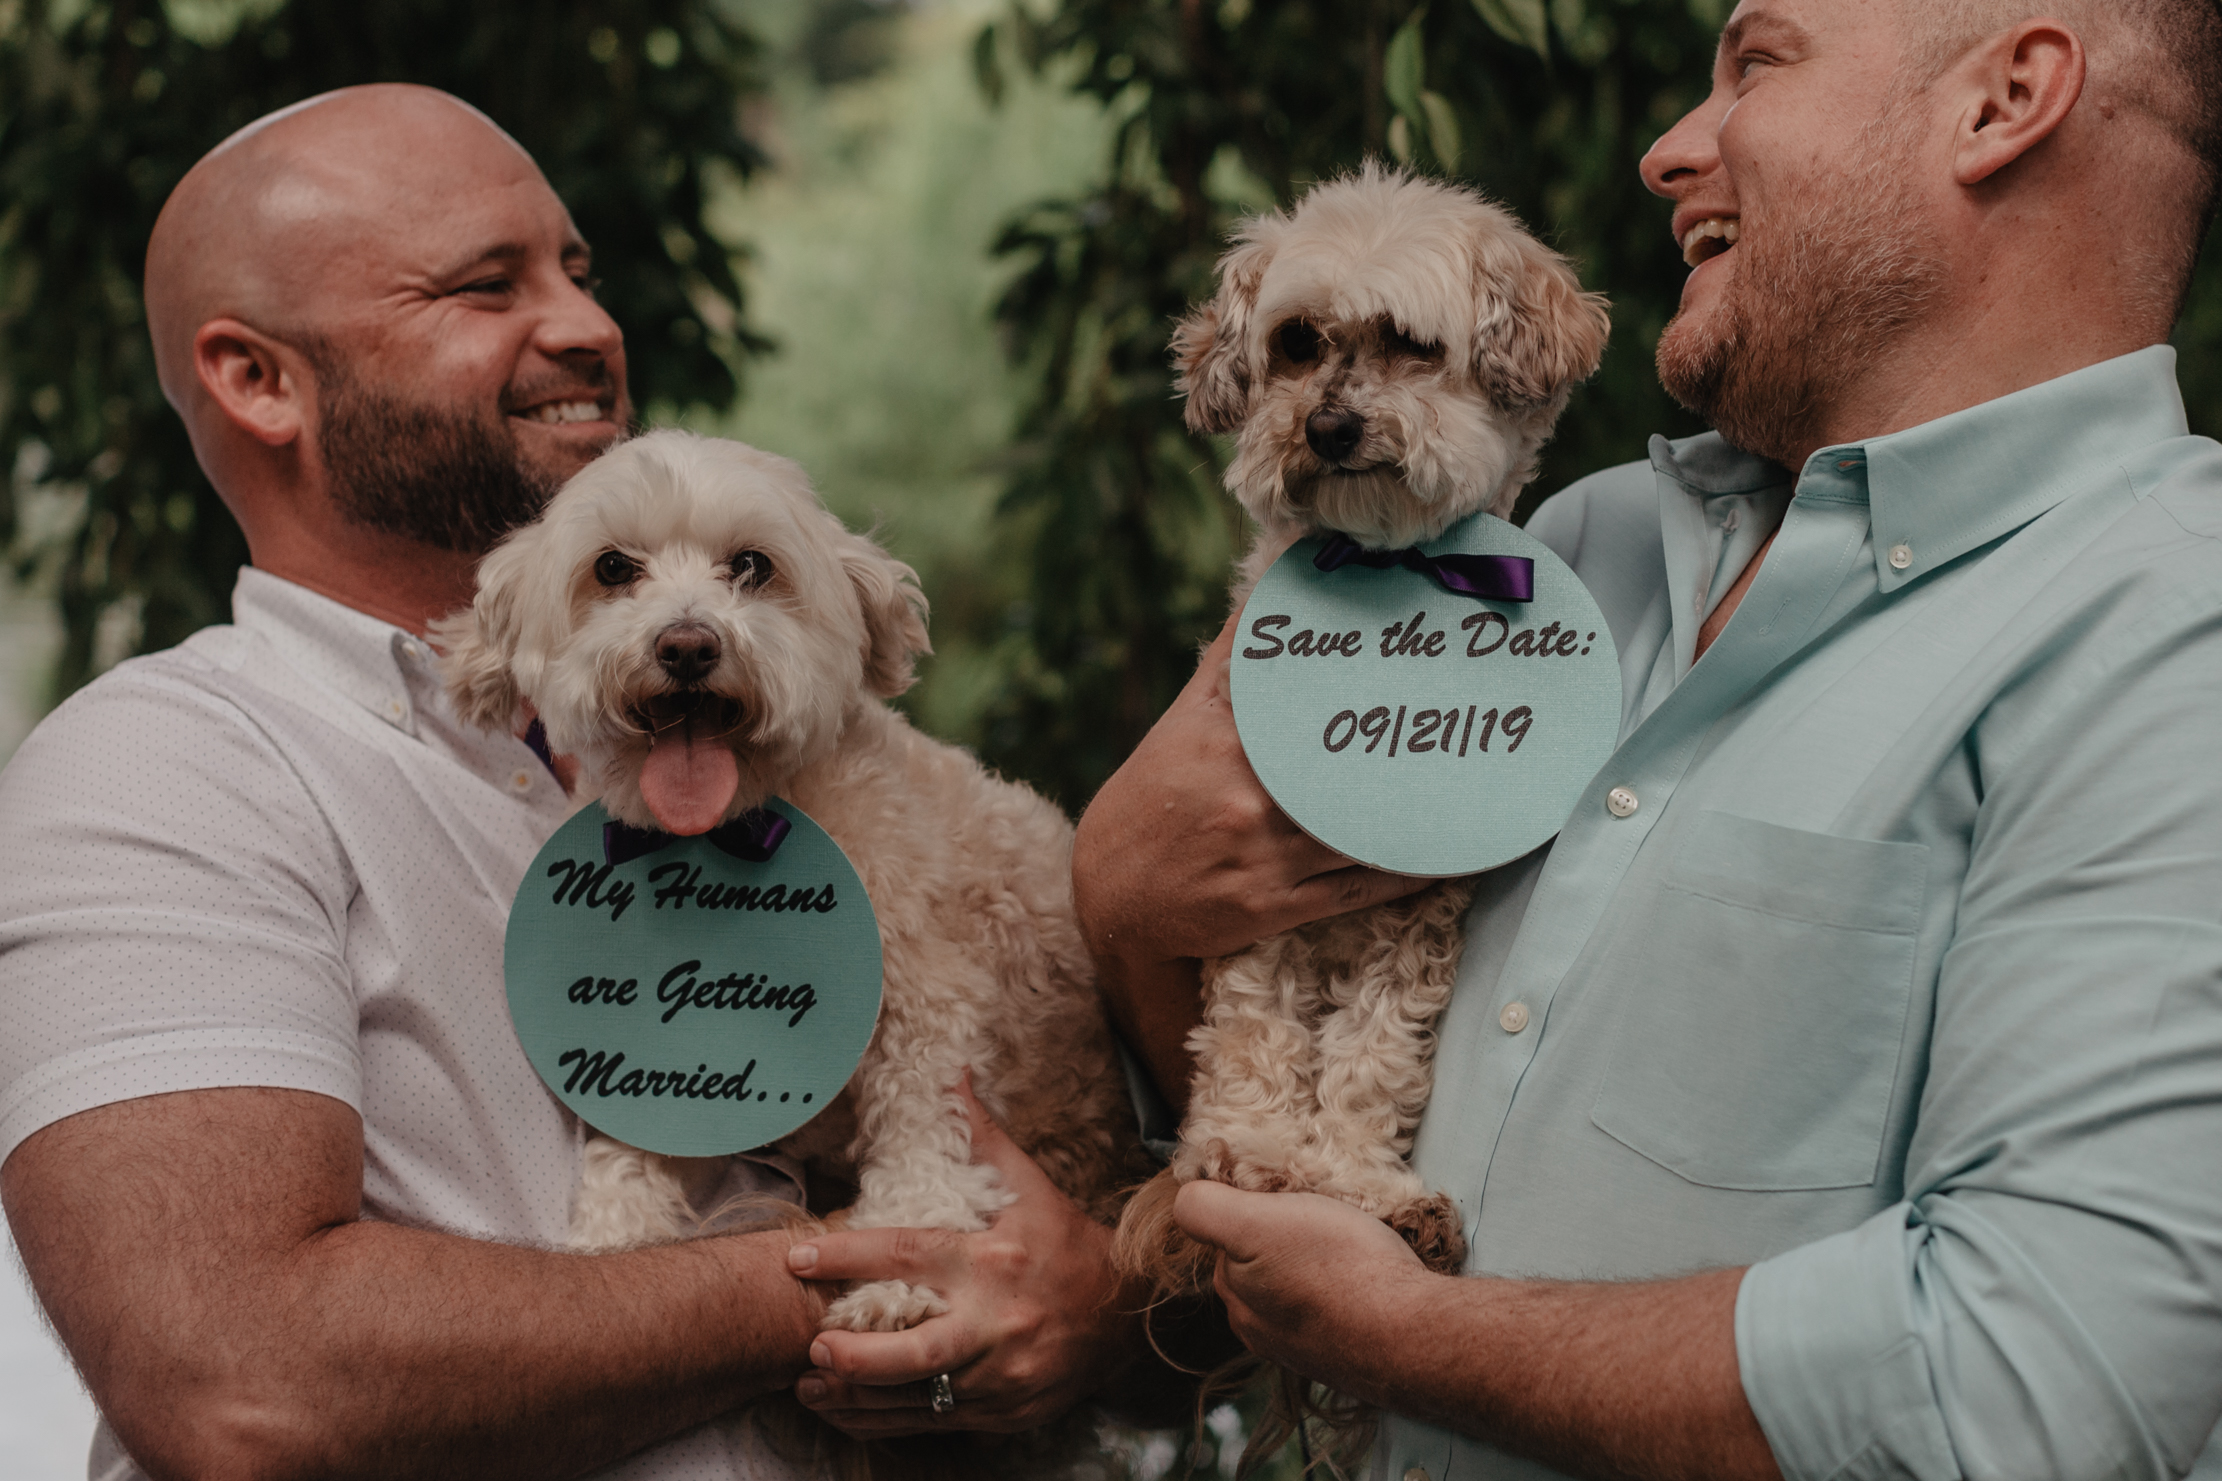 Dog Save The Dates | My Humans Are Getting Married